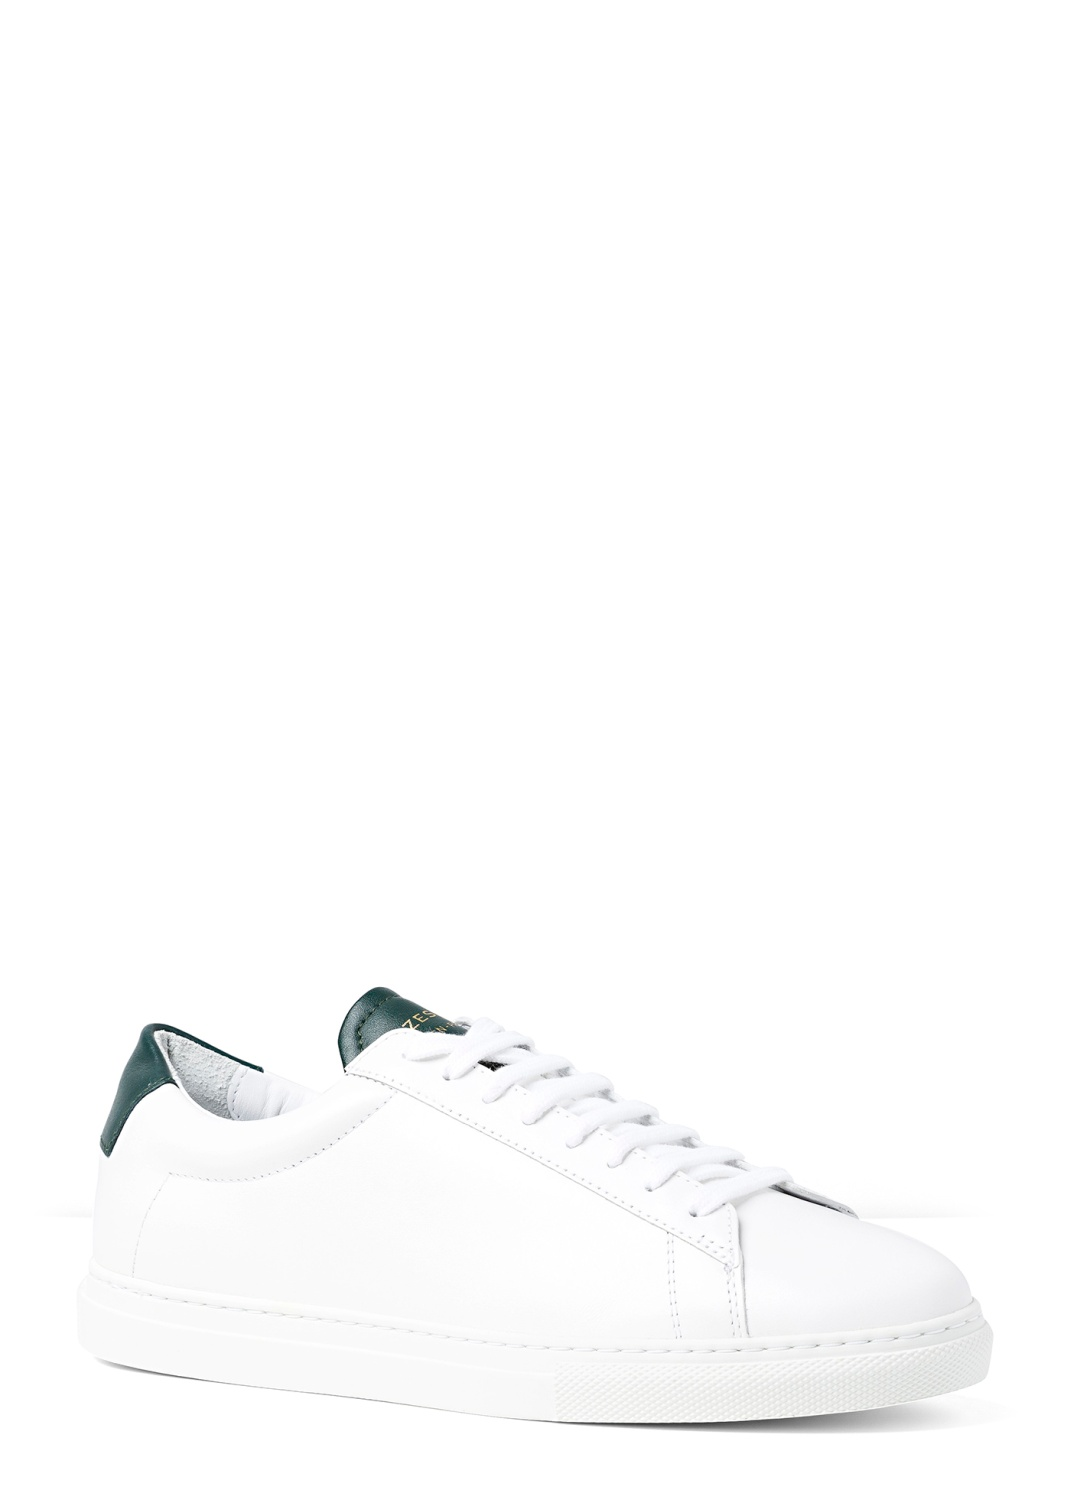 ZSP4 APLA NAPPA WHITE / image number 1